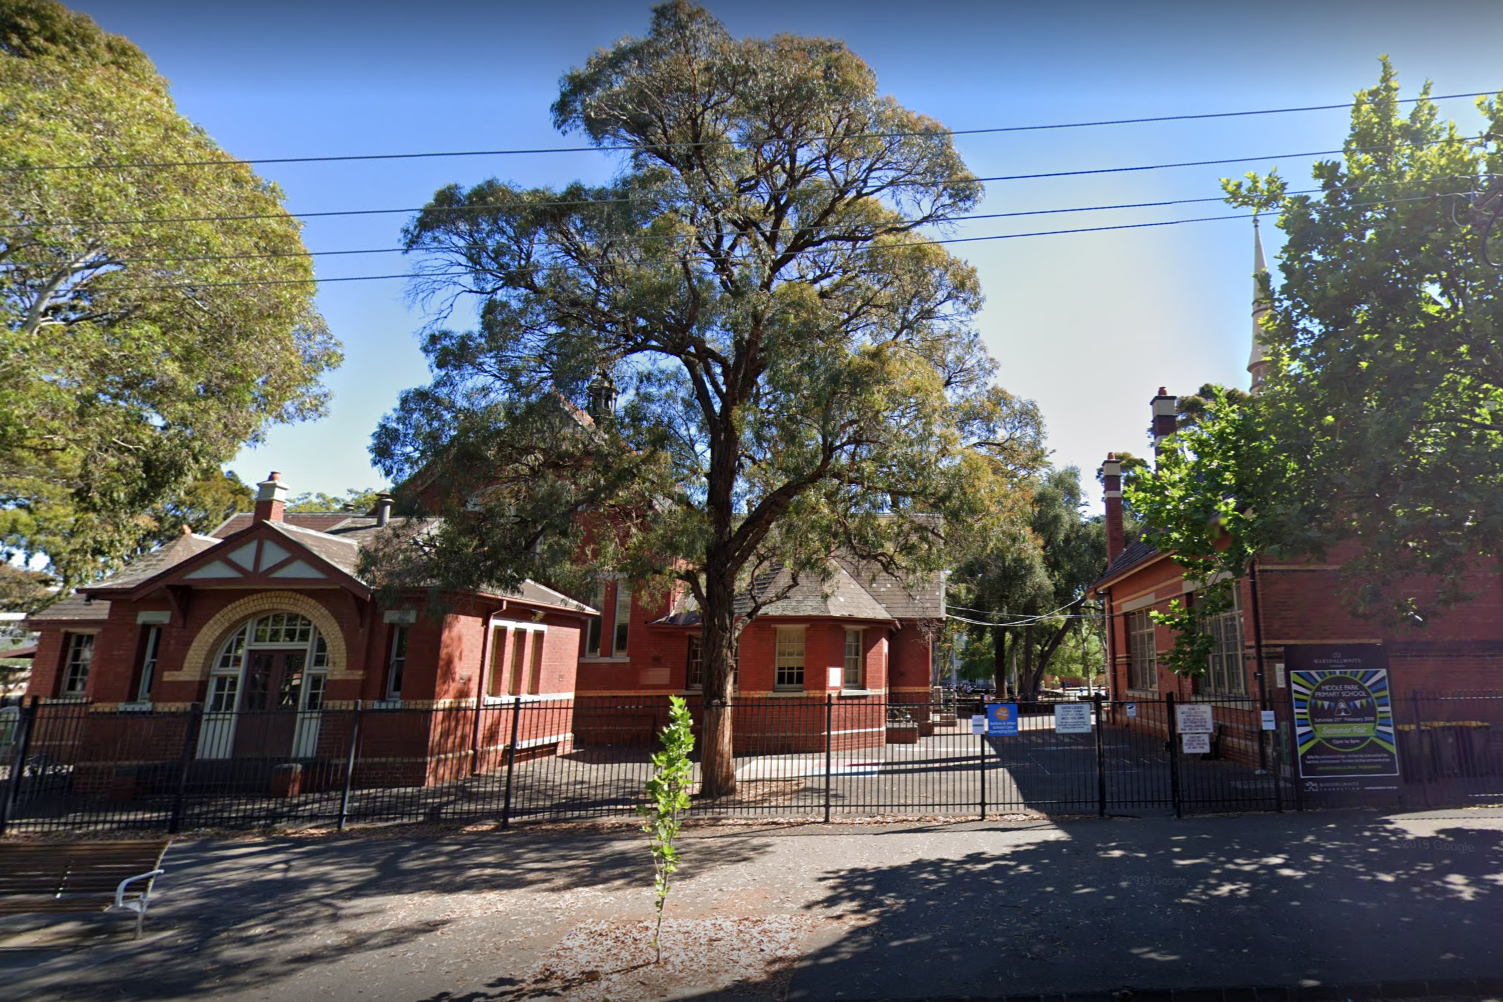 RUMOUR CONFIRMED: Another Melbourne school closed after staff member tests positive to COVID-19